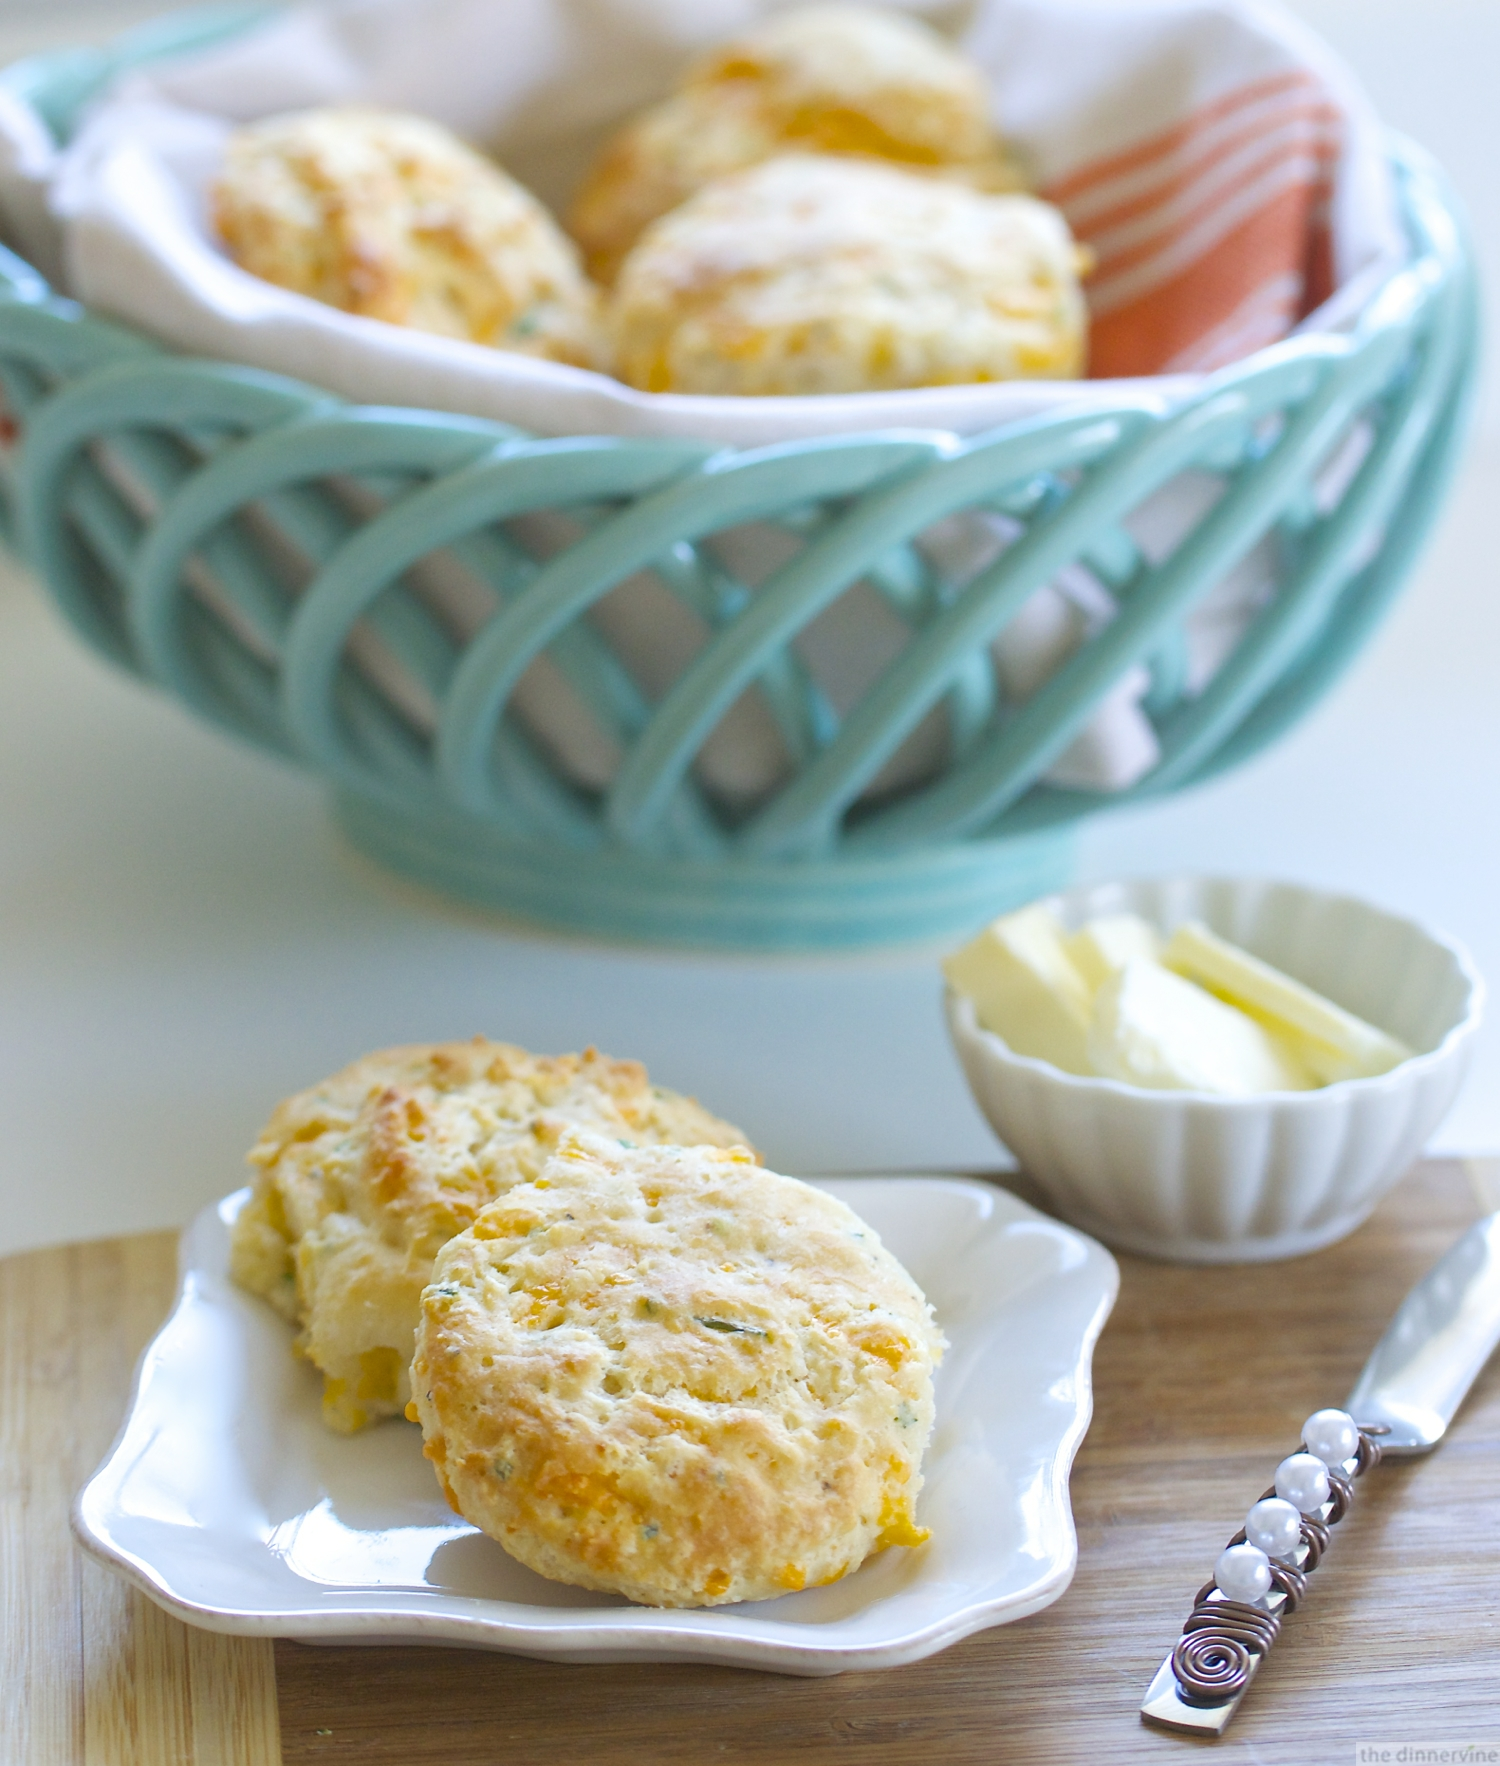 Cheddar Chive Buttermilk Biscuits